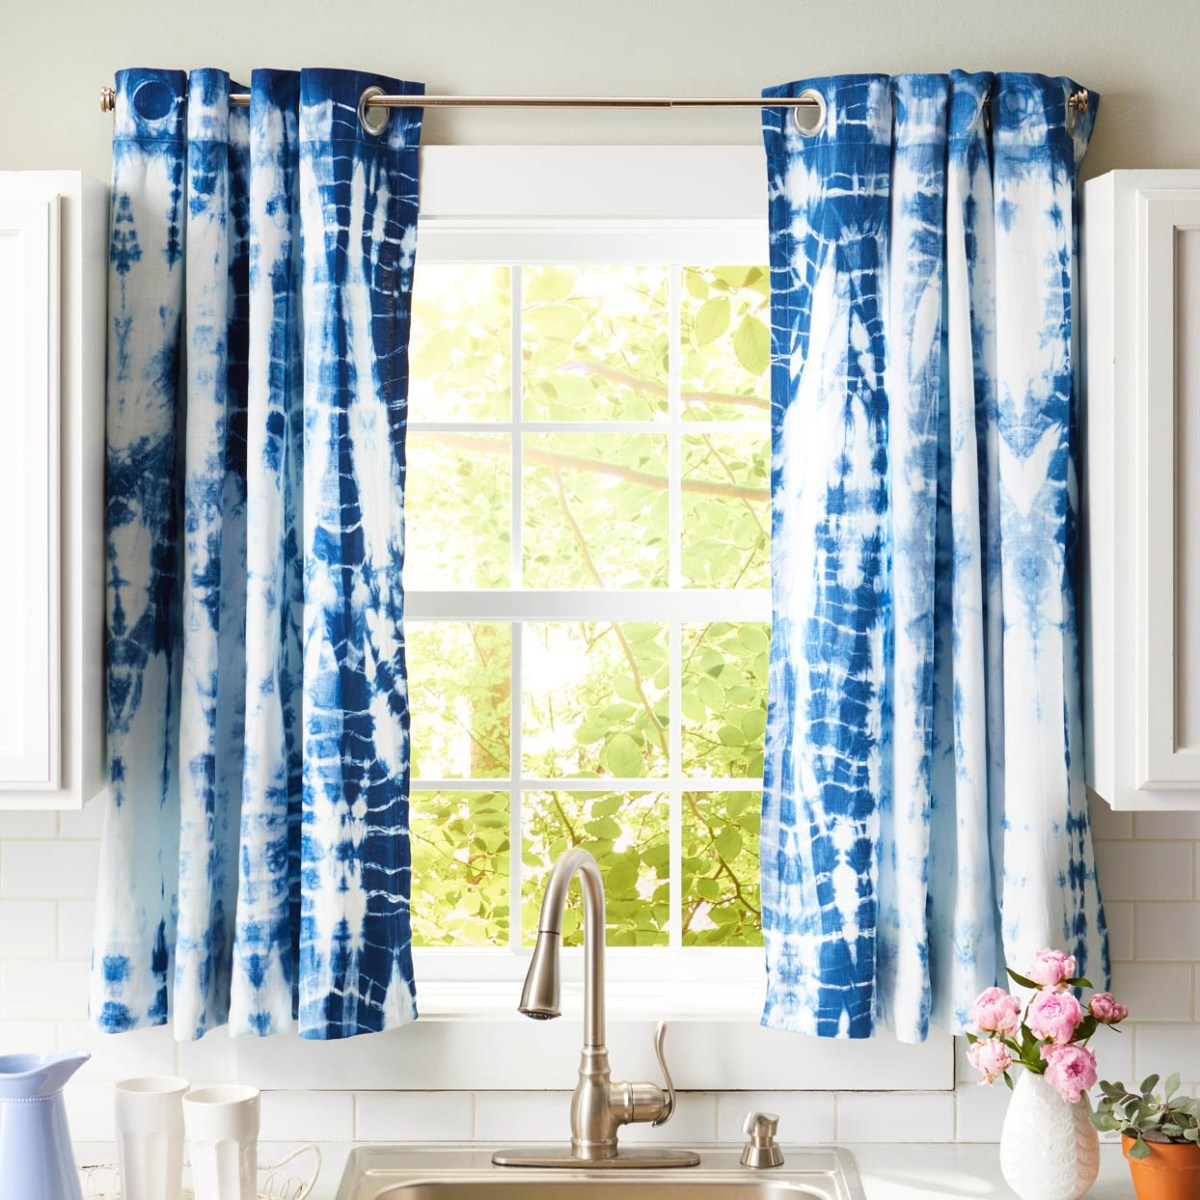 Above Sink Curtain Ideas For Kitchen